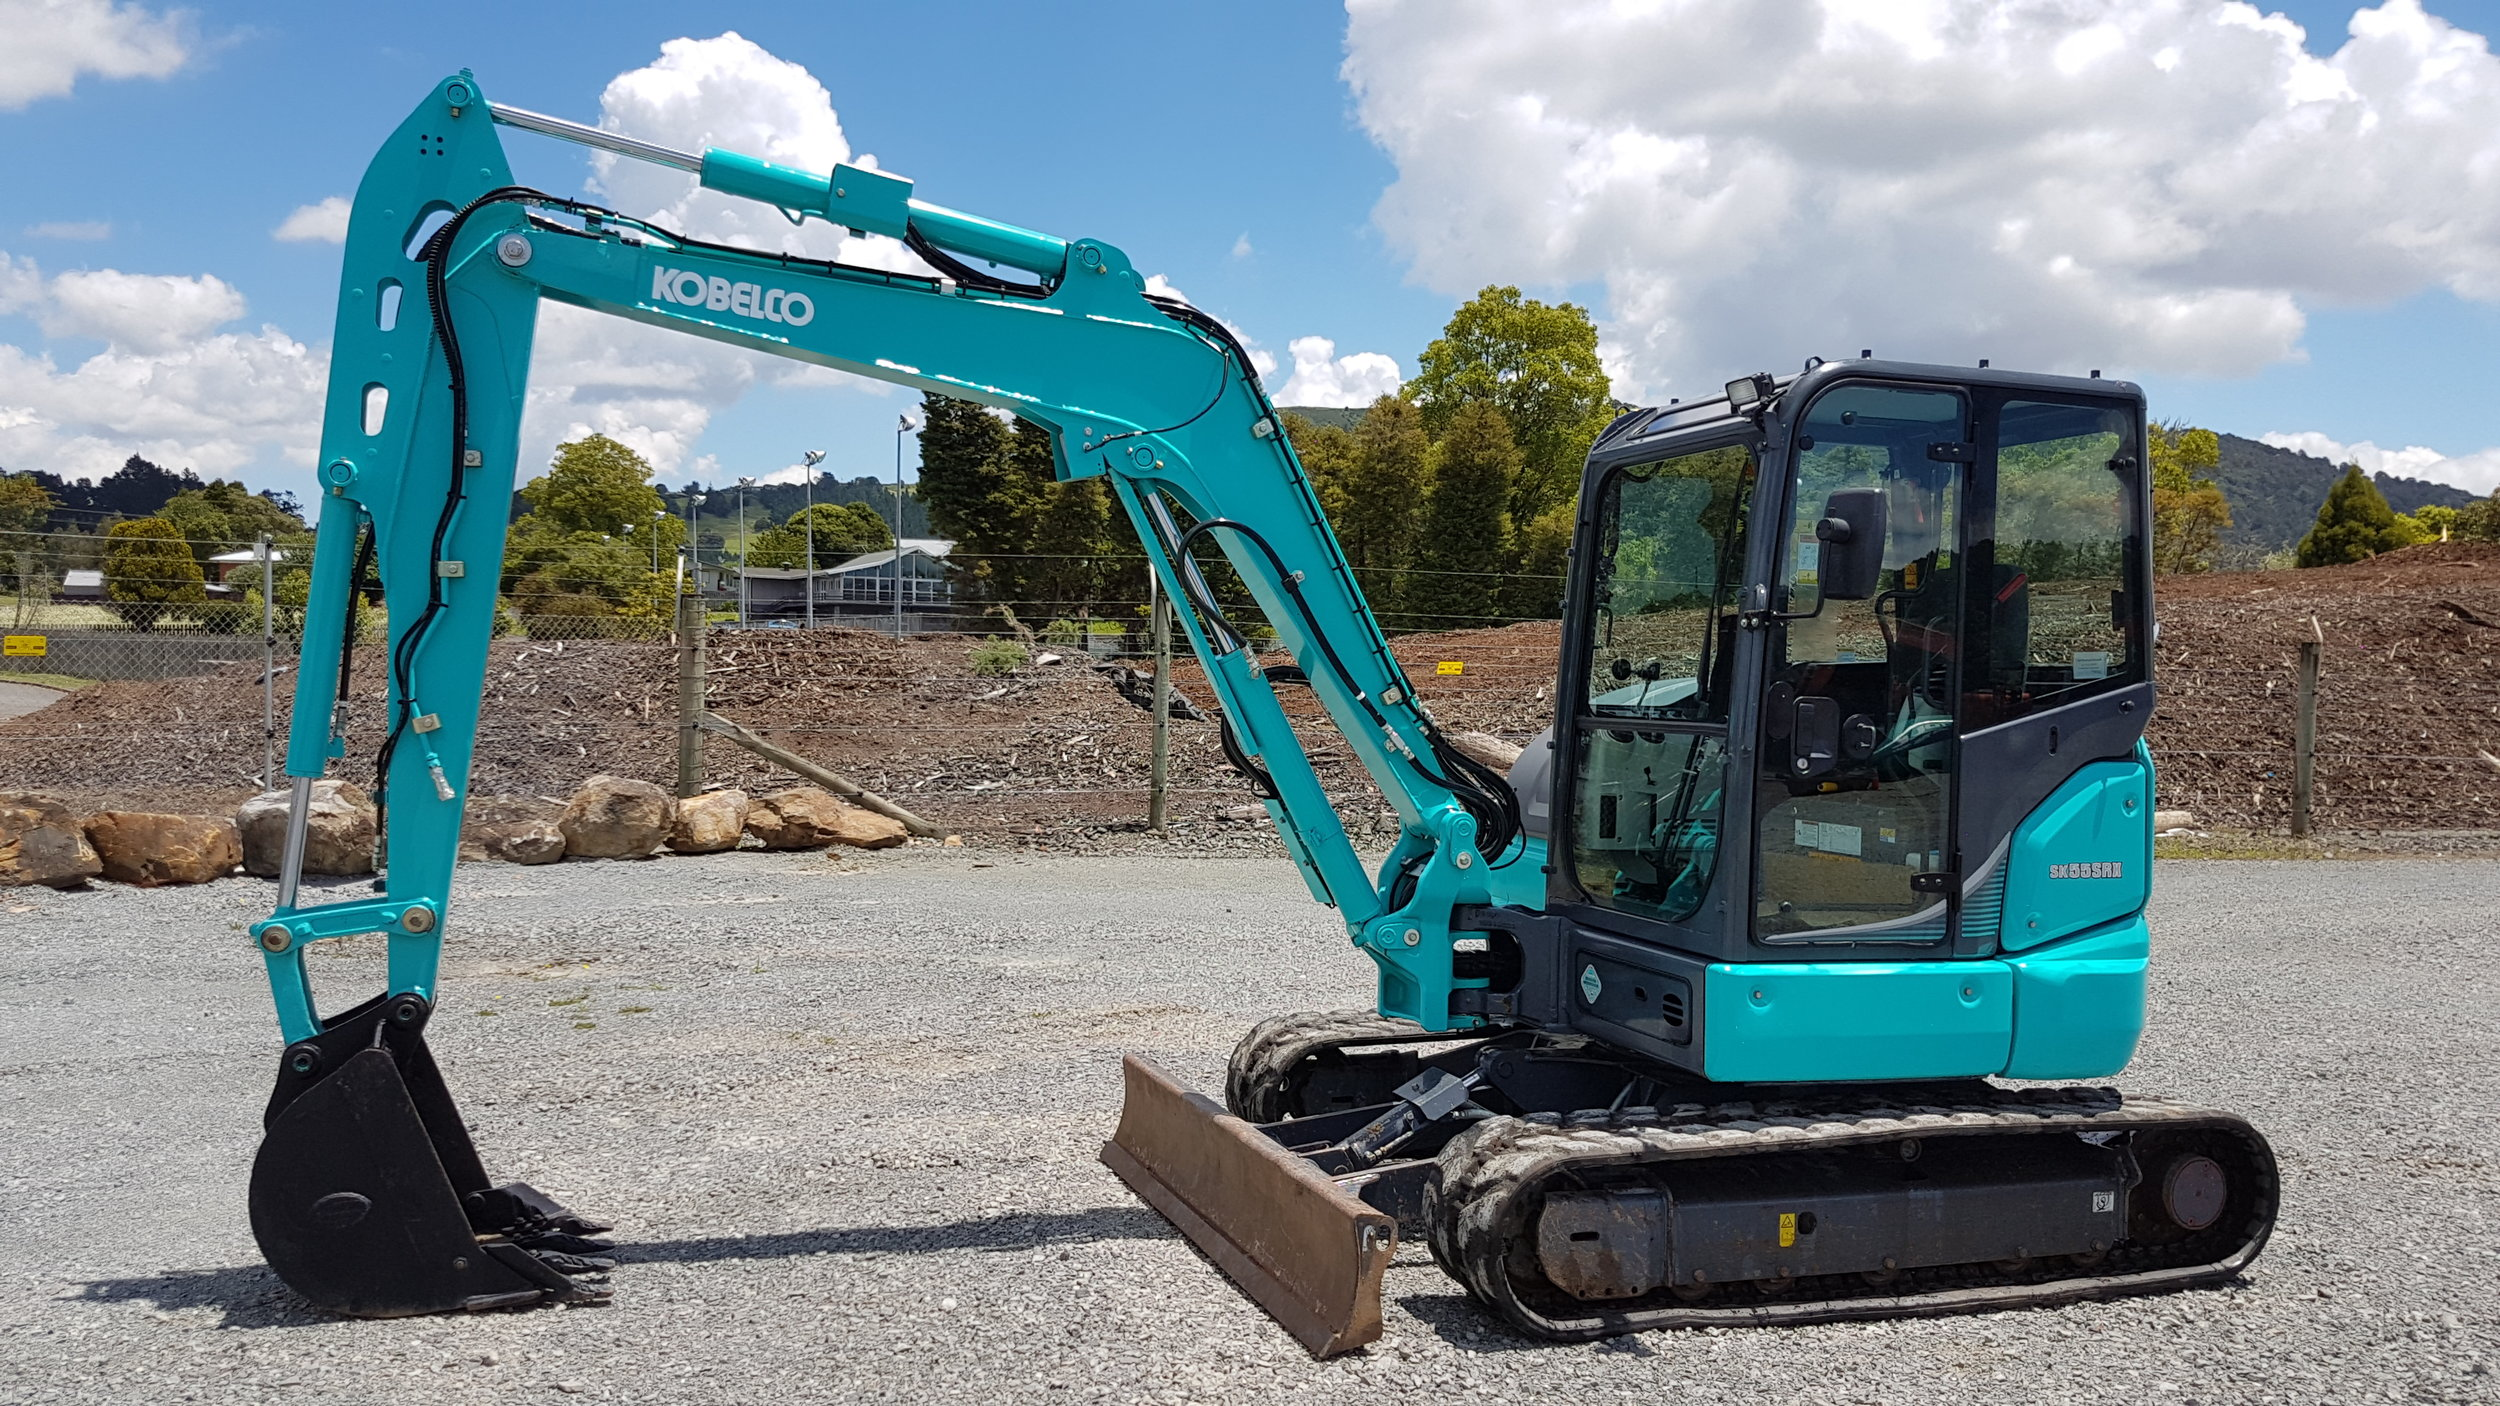 2015 Kobelco SK55SRX-6 with rock bucket - 990 hours